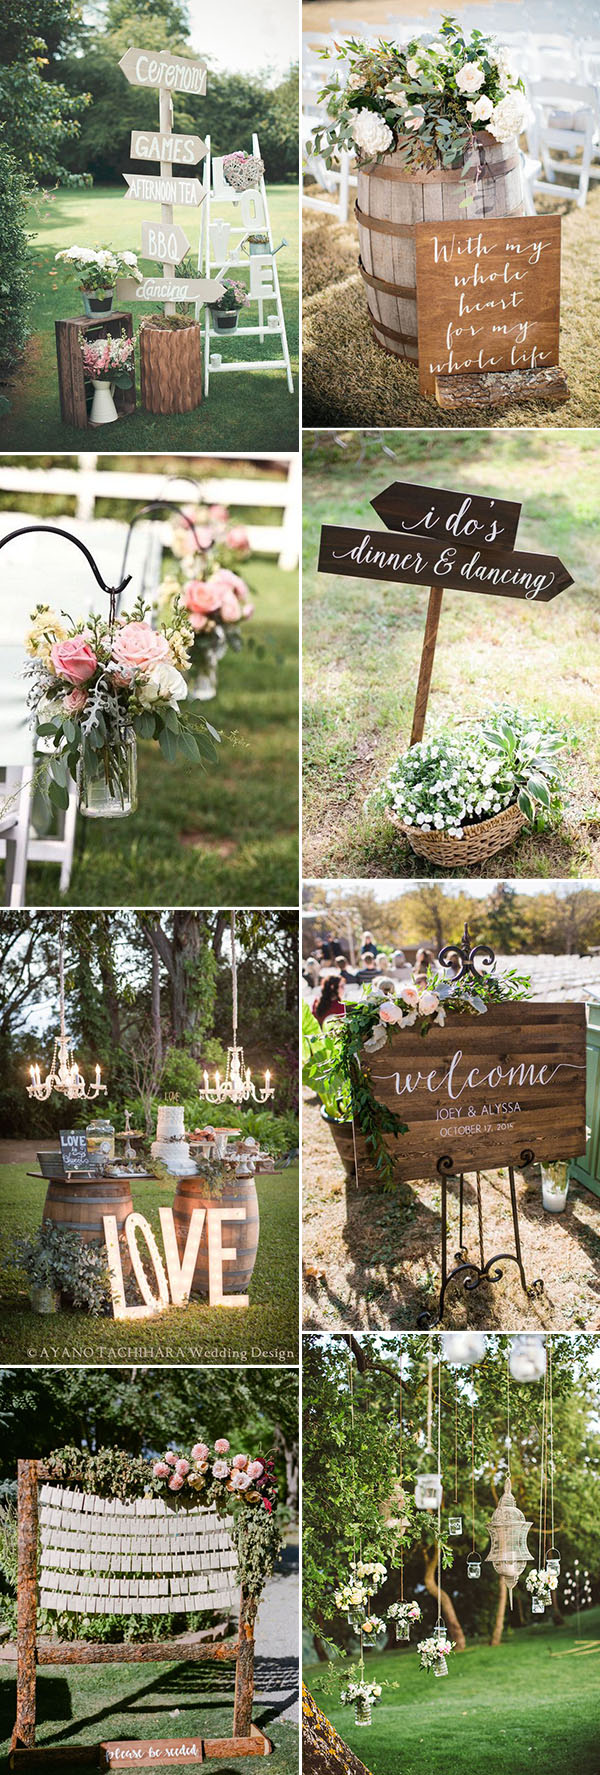 9 Most Inspiring Garden-Inspired Wedding Ideas